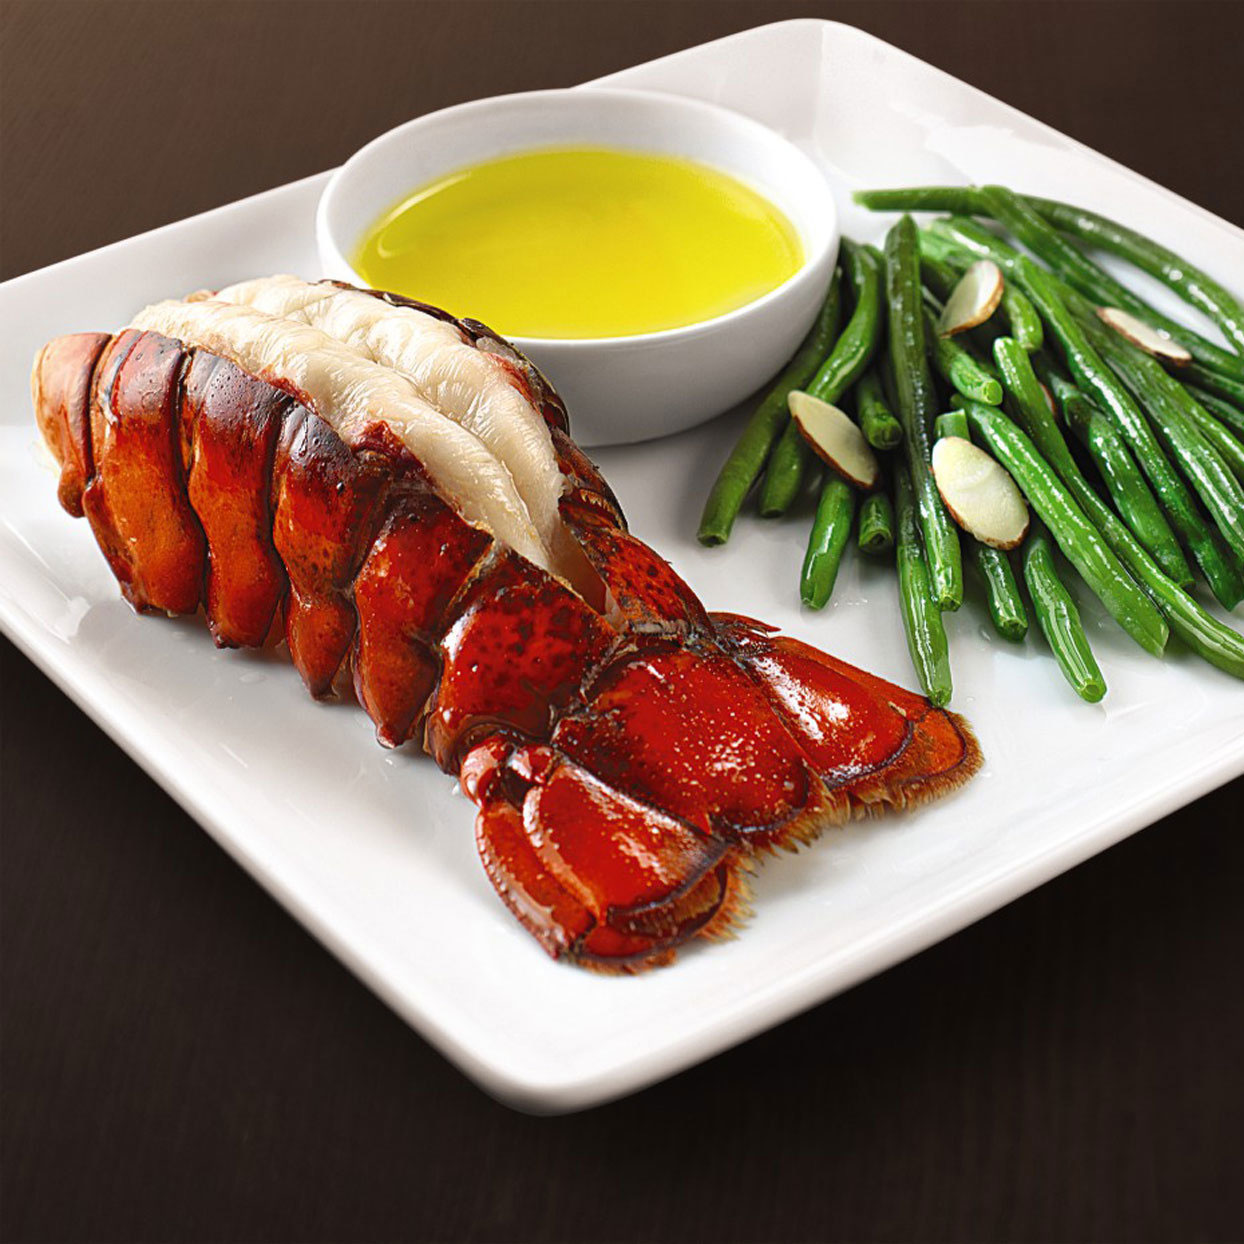 lobster tail with melted butter and green beans